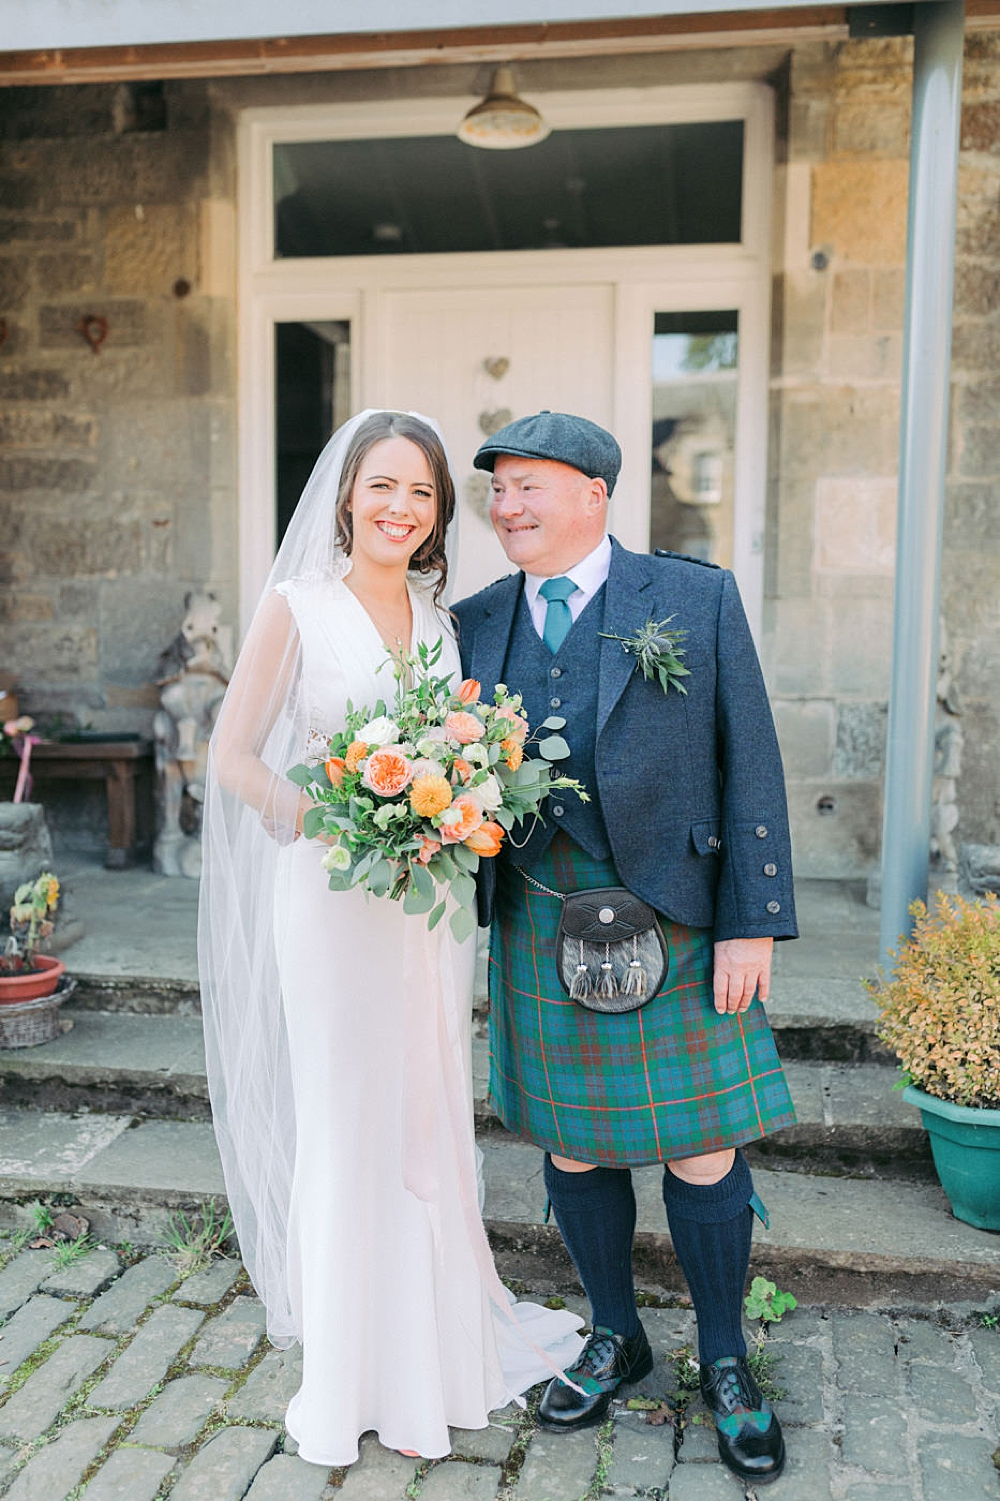 Fine Art Wedding Photographers,elegant wedding photographers glasgow,farm weddings scotland,light and airy wedding photographers glasgow,light and bright wedding photographers scotland,natural wedding photographers,pratis barn wedding,romantic photographers Scotland,romantic wedding photographers,